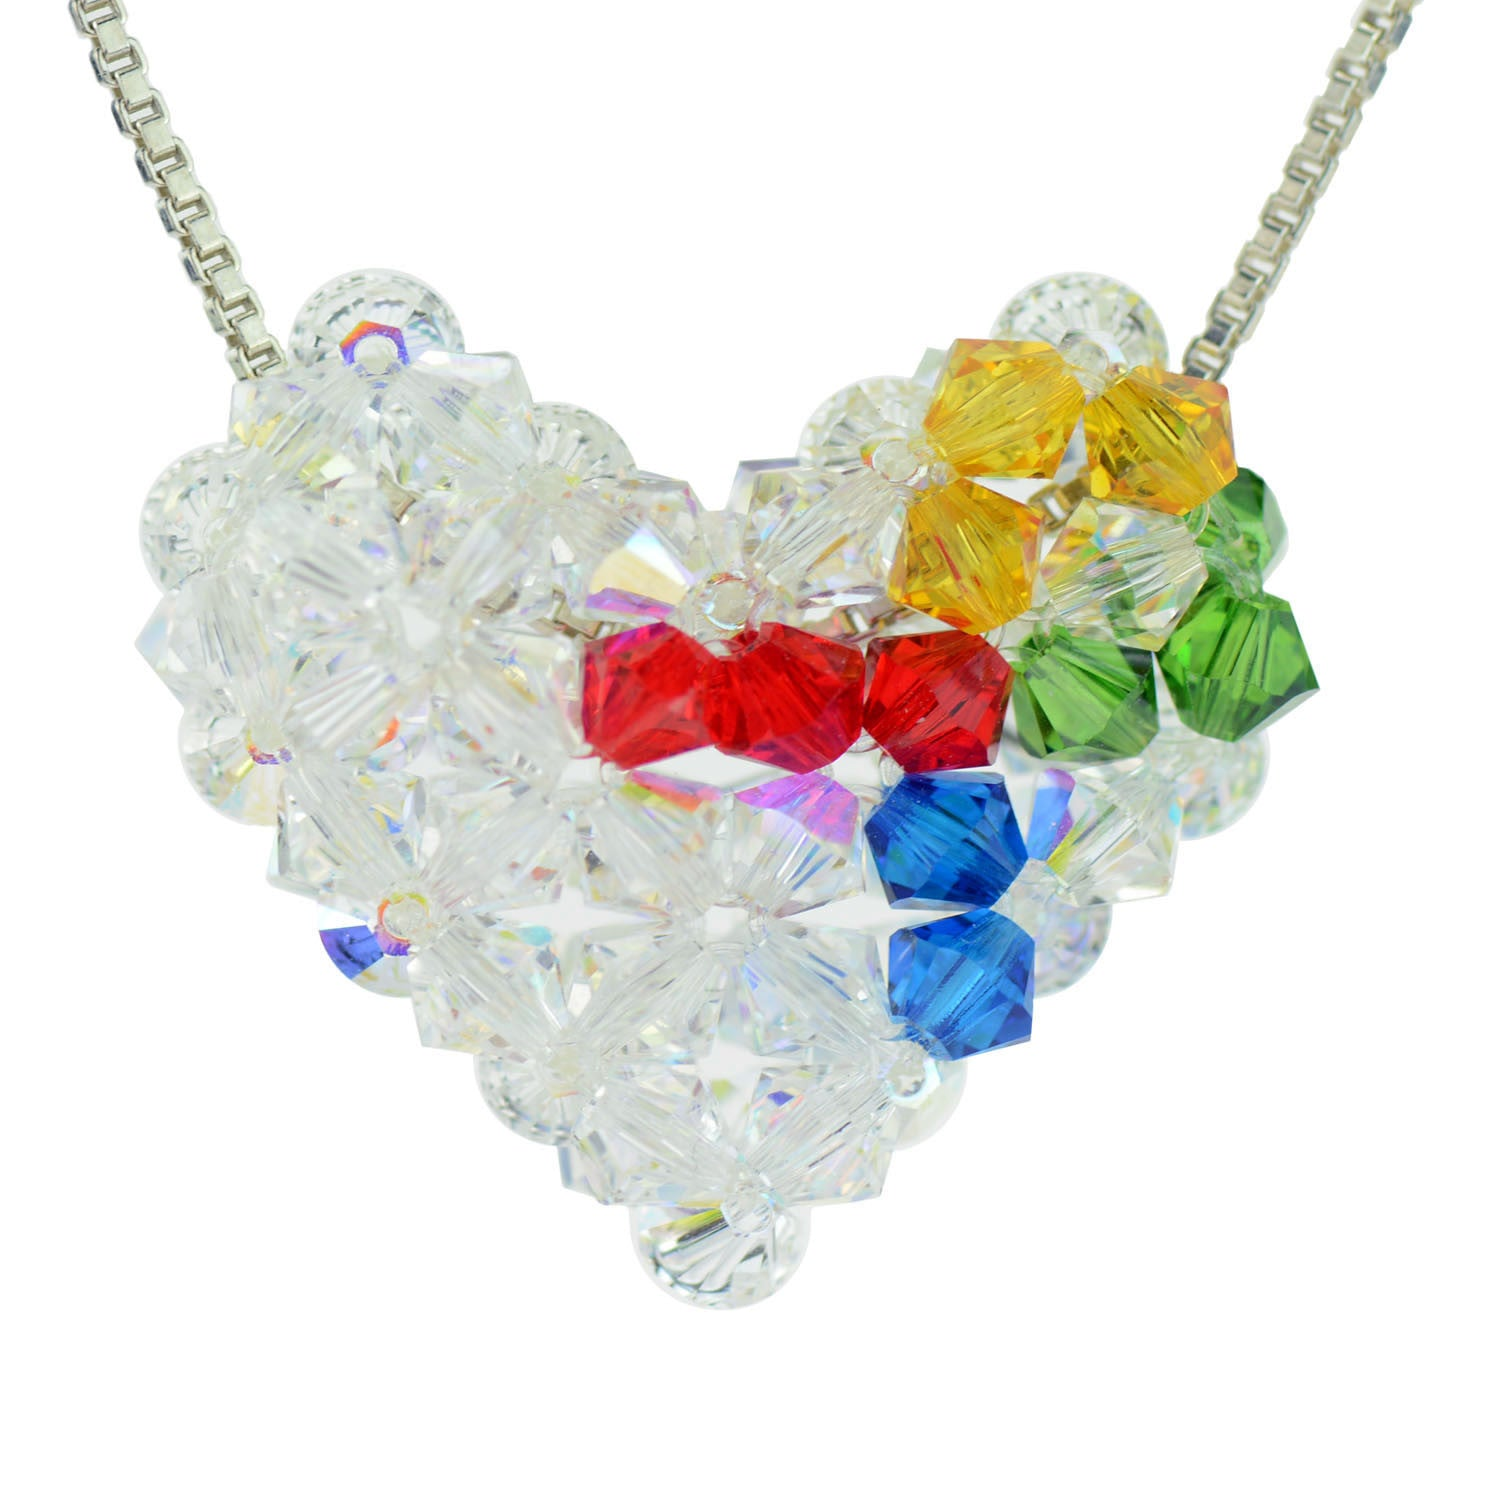 Sterling silver and swarovski crystal autism awareness woven puffy sterling silver and swarovski crystal autism awareness woven puffy heart necklace aloadofball Gallery